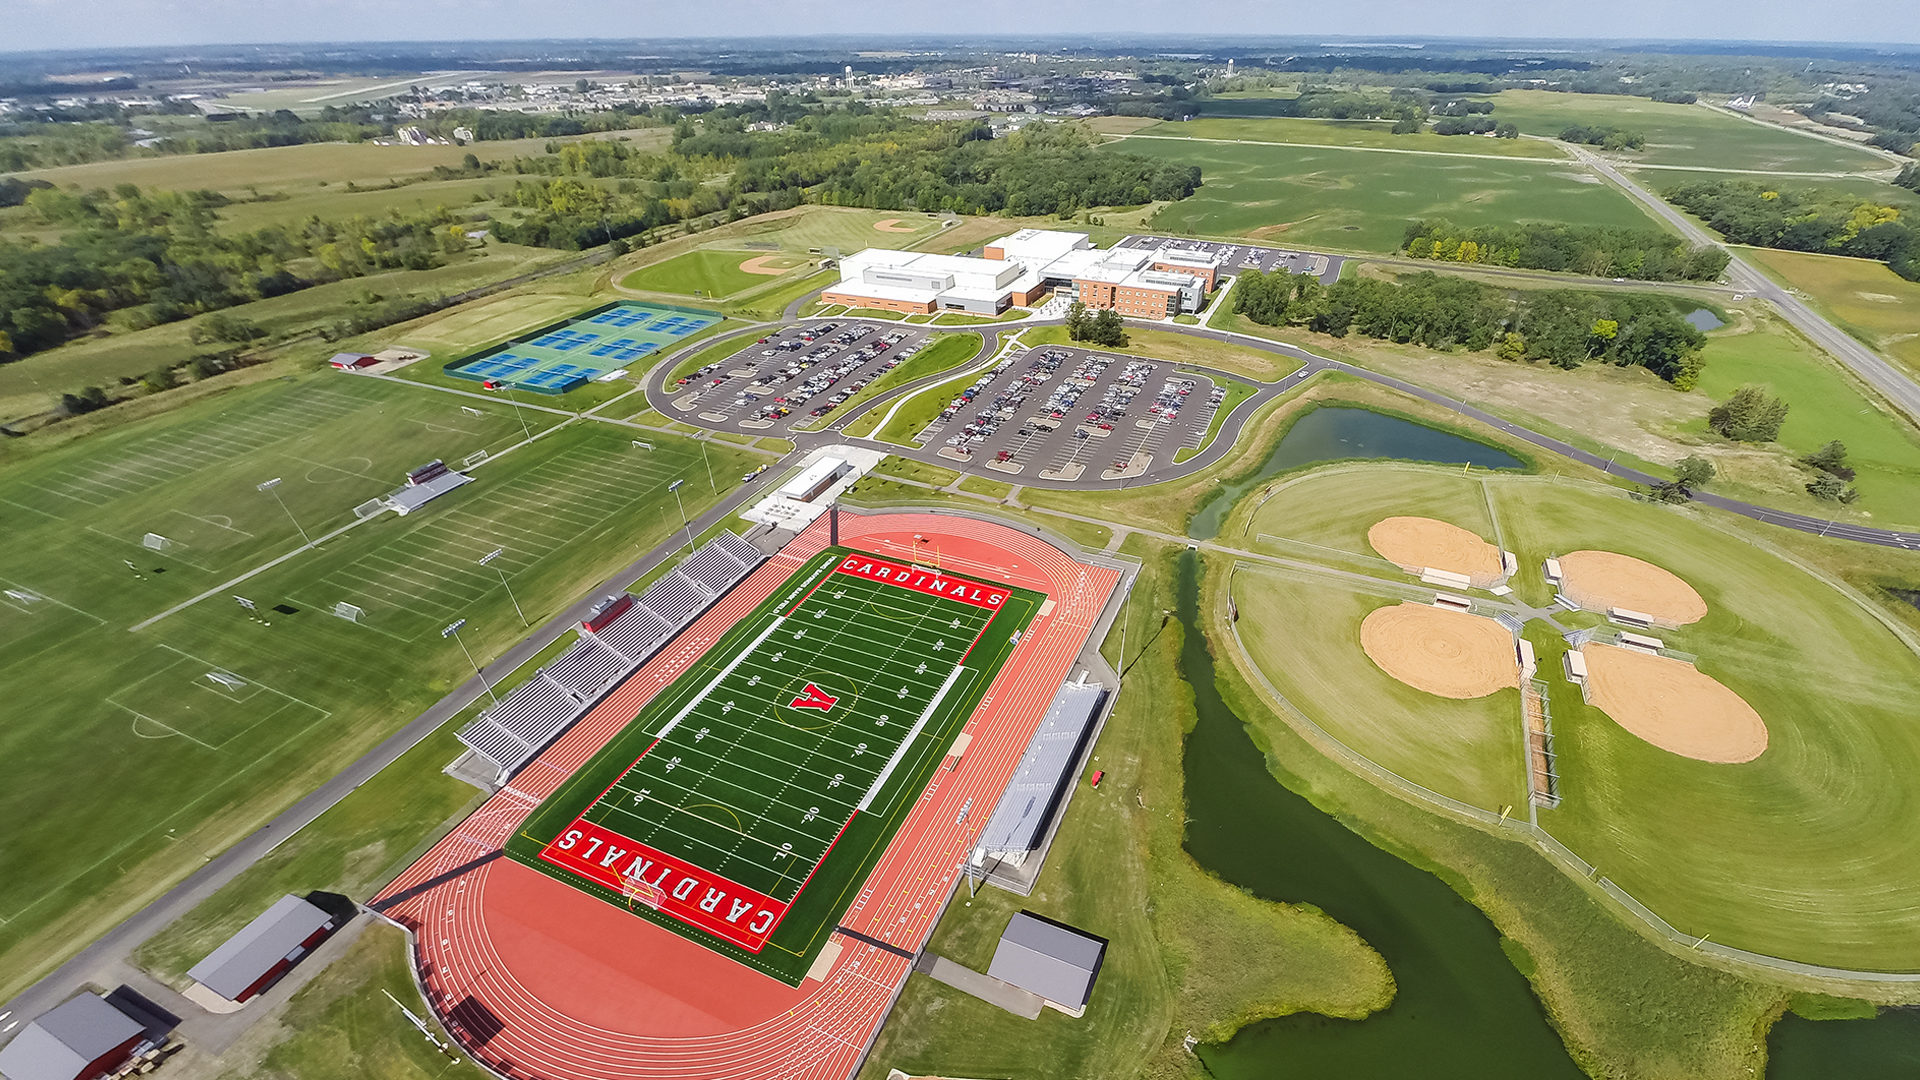 Alexandria High School Exterior Aerial View of HS and Sports Fields